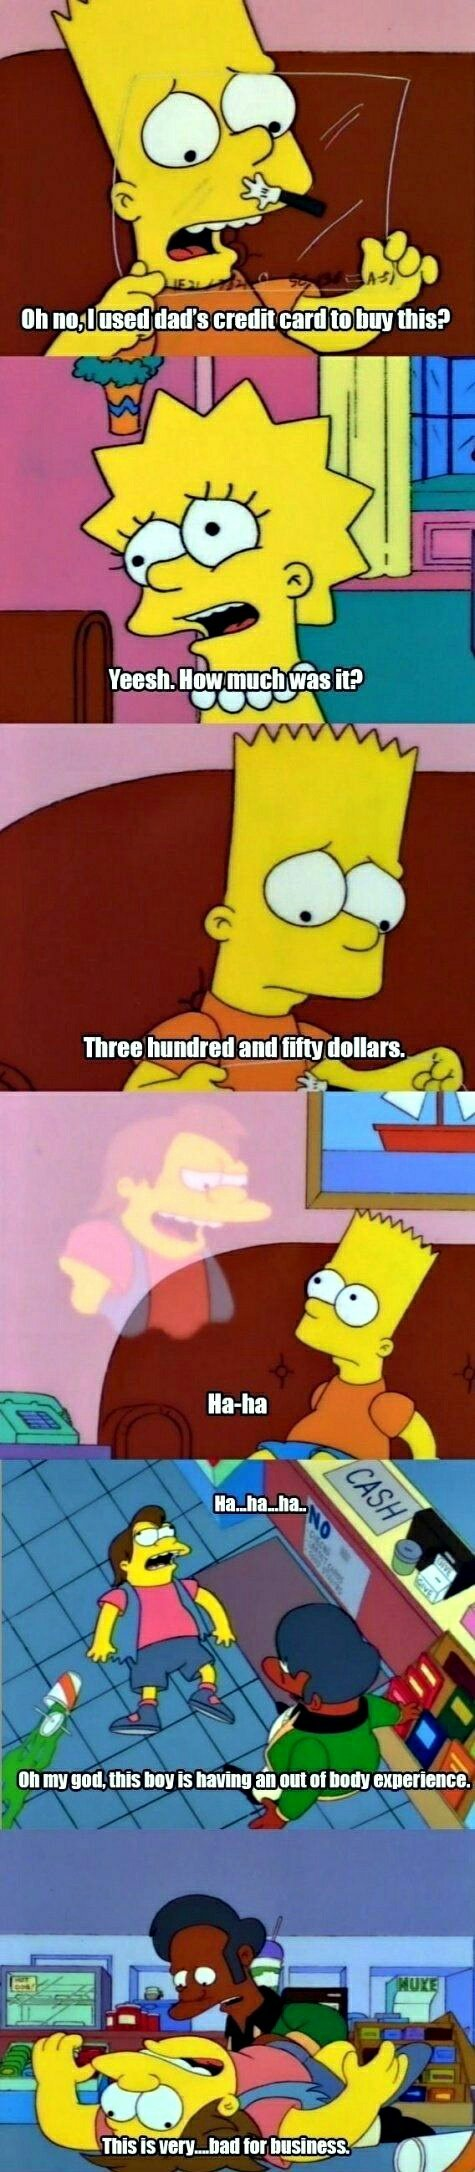 The simpsons - meme